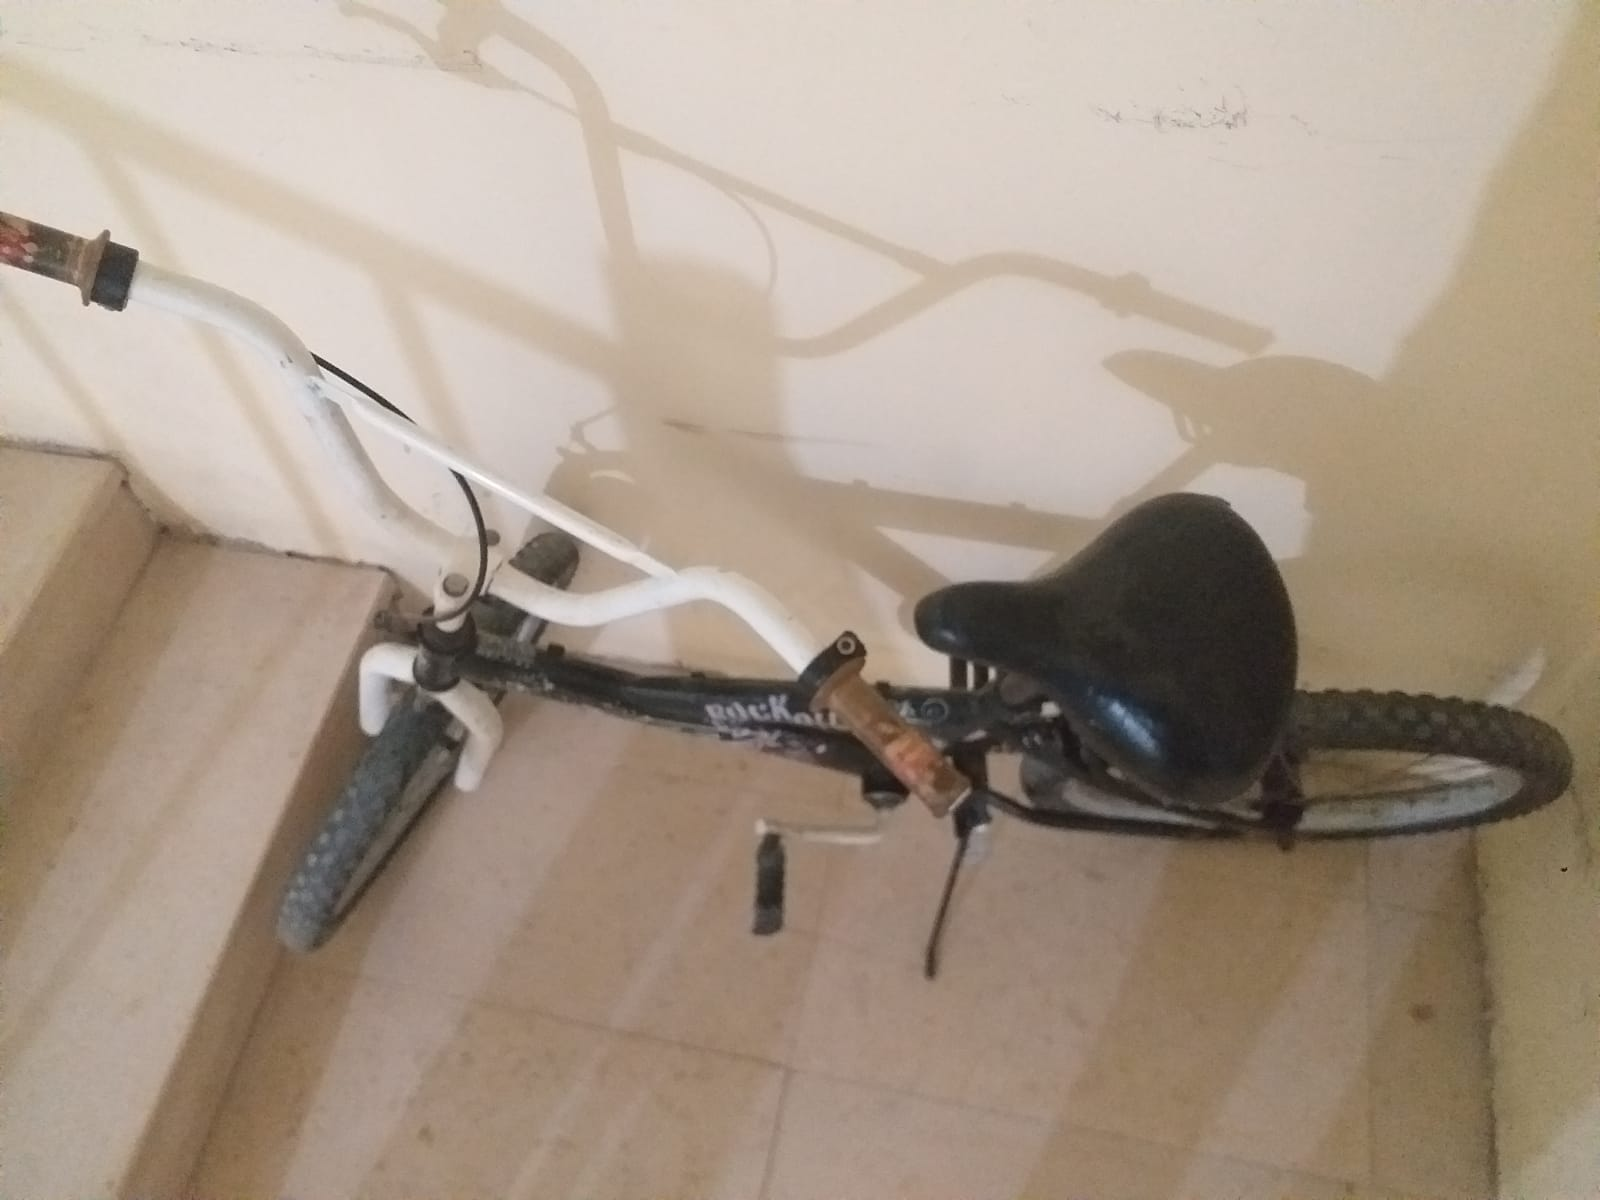 Boy cycle for sale - Qty